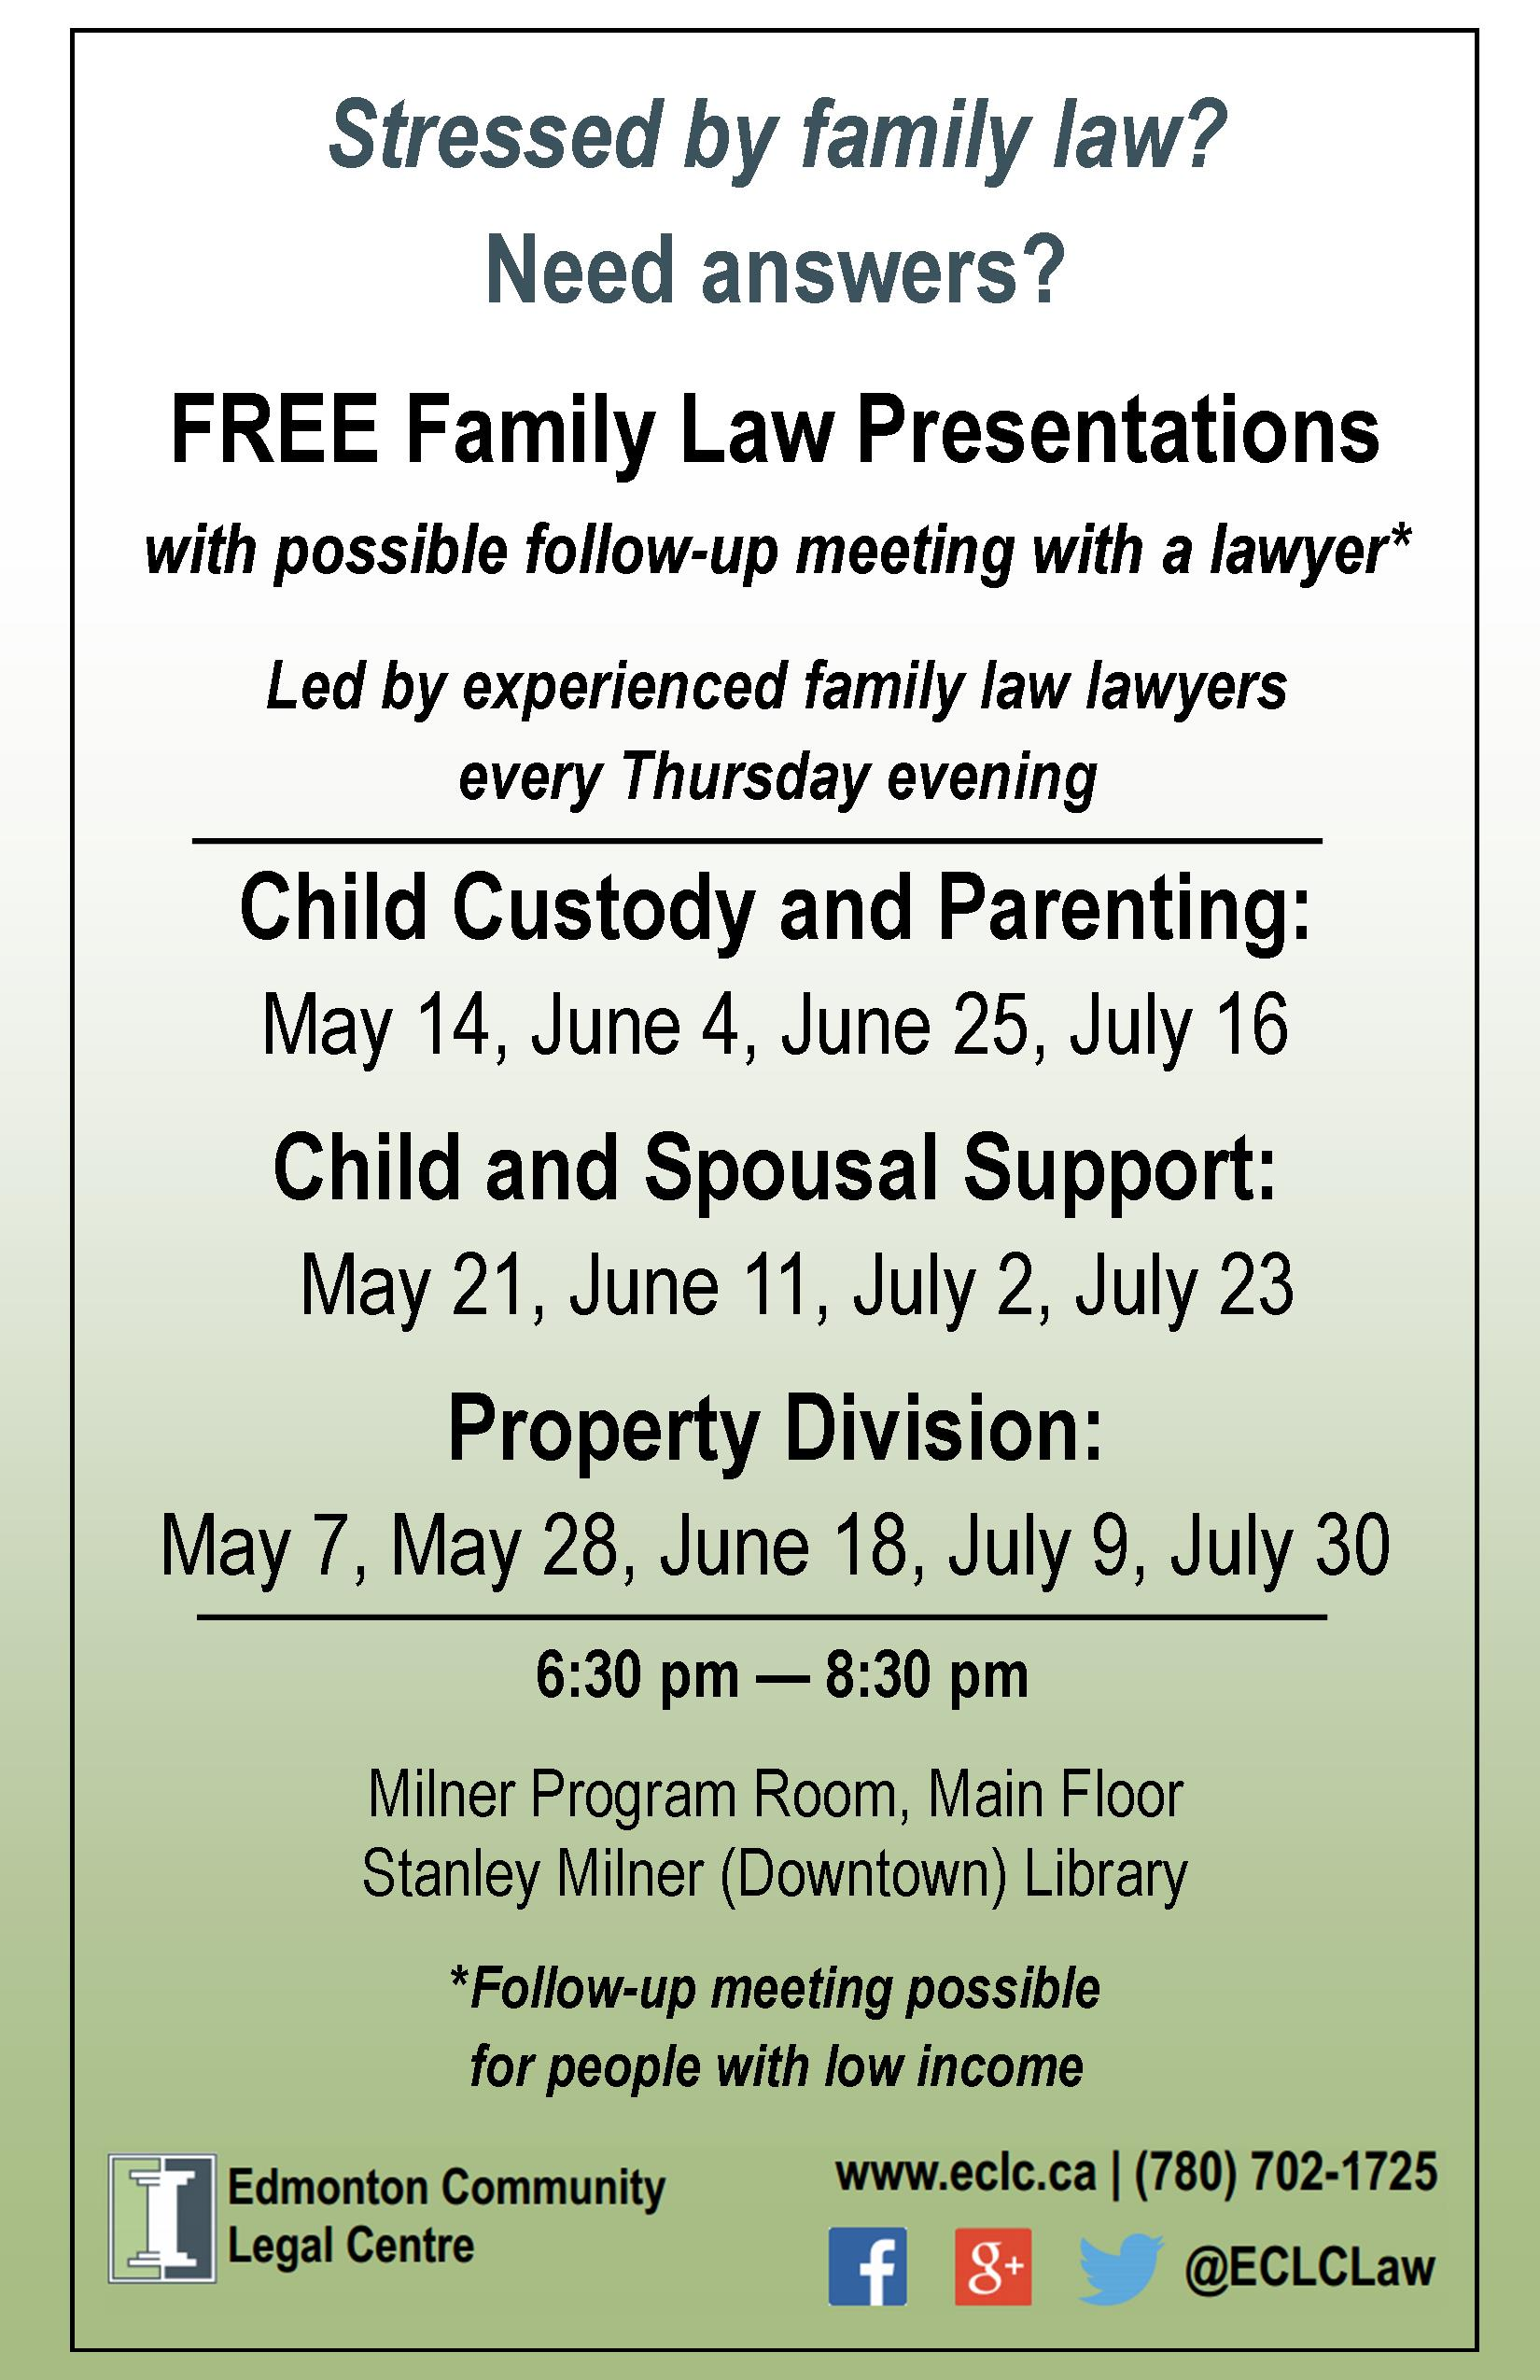 Free Family Law Presentations by ECLC - 2015 Q2